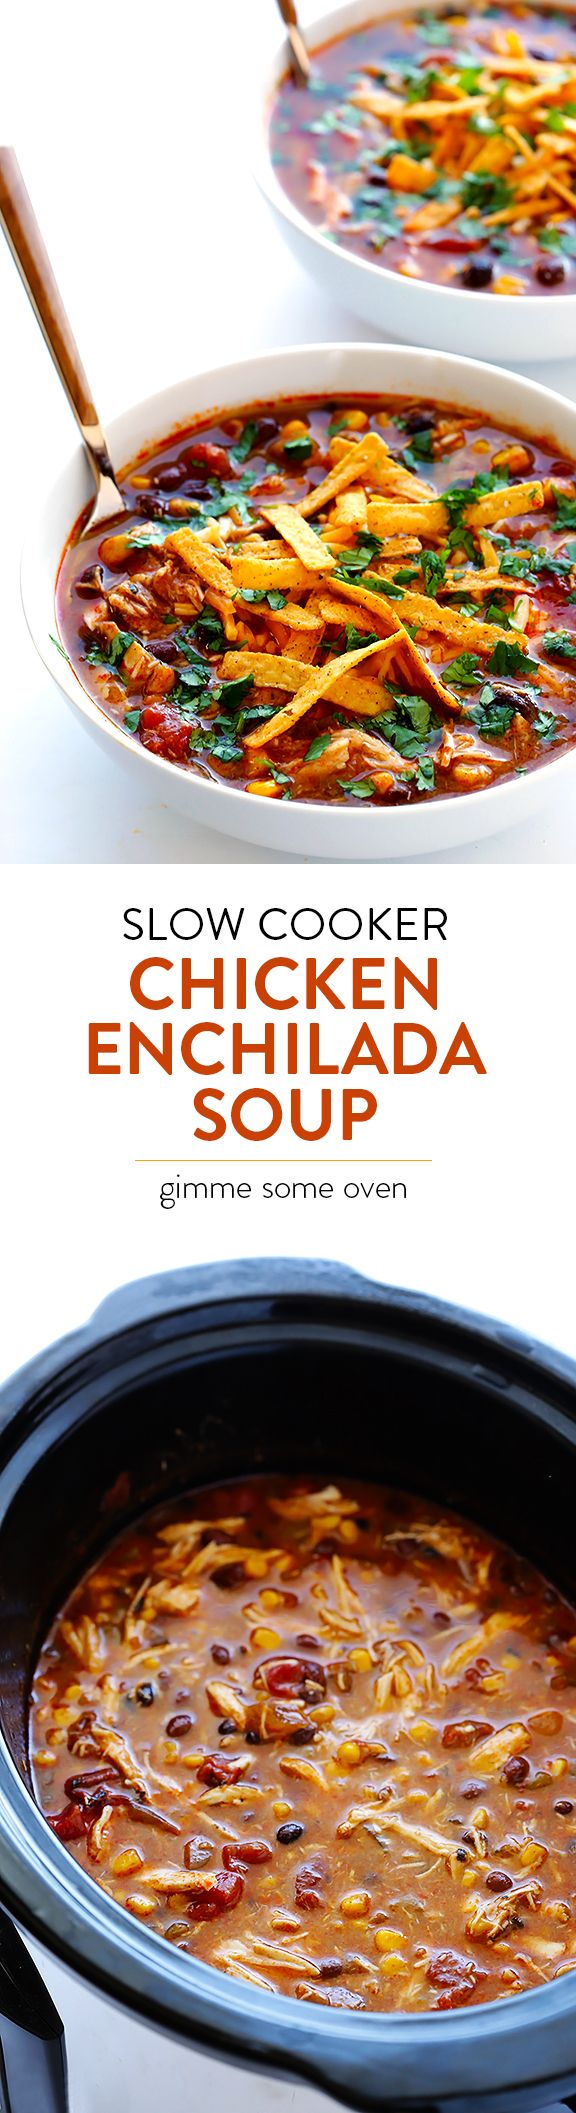 Let your crock pot do all of the work with this Slow Cooker Chicken Enchilada Soup.  It only takes minutes to prep, and it's MUY delicioso! | gimmesomeoven.com